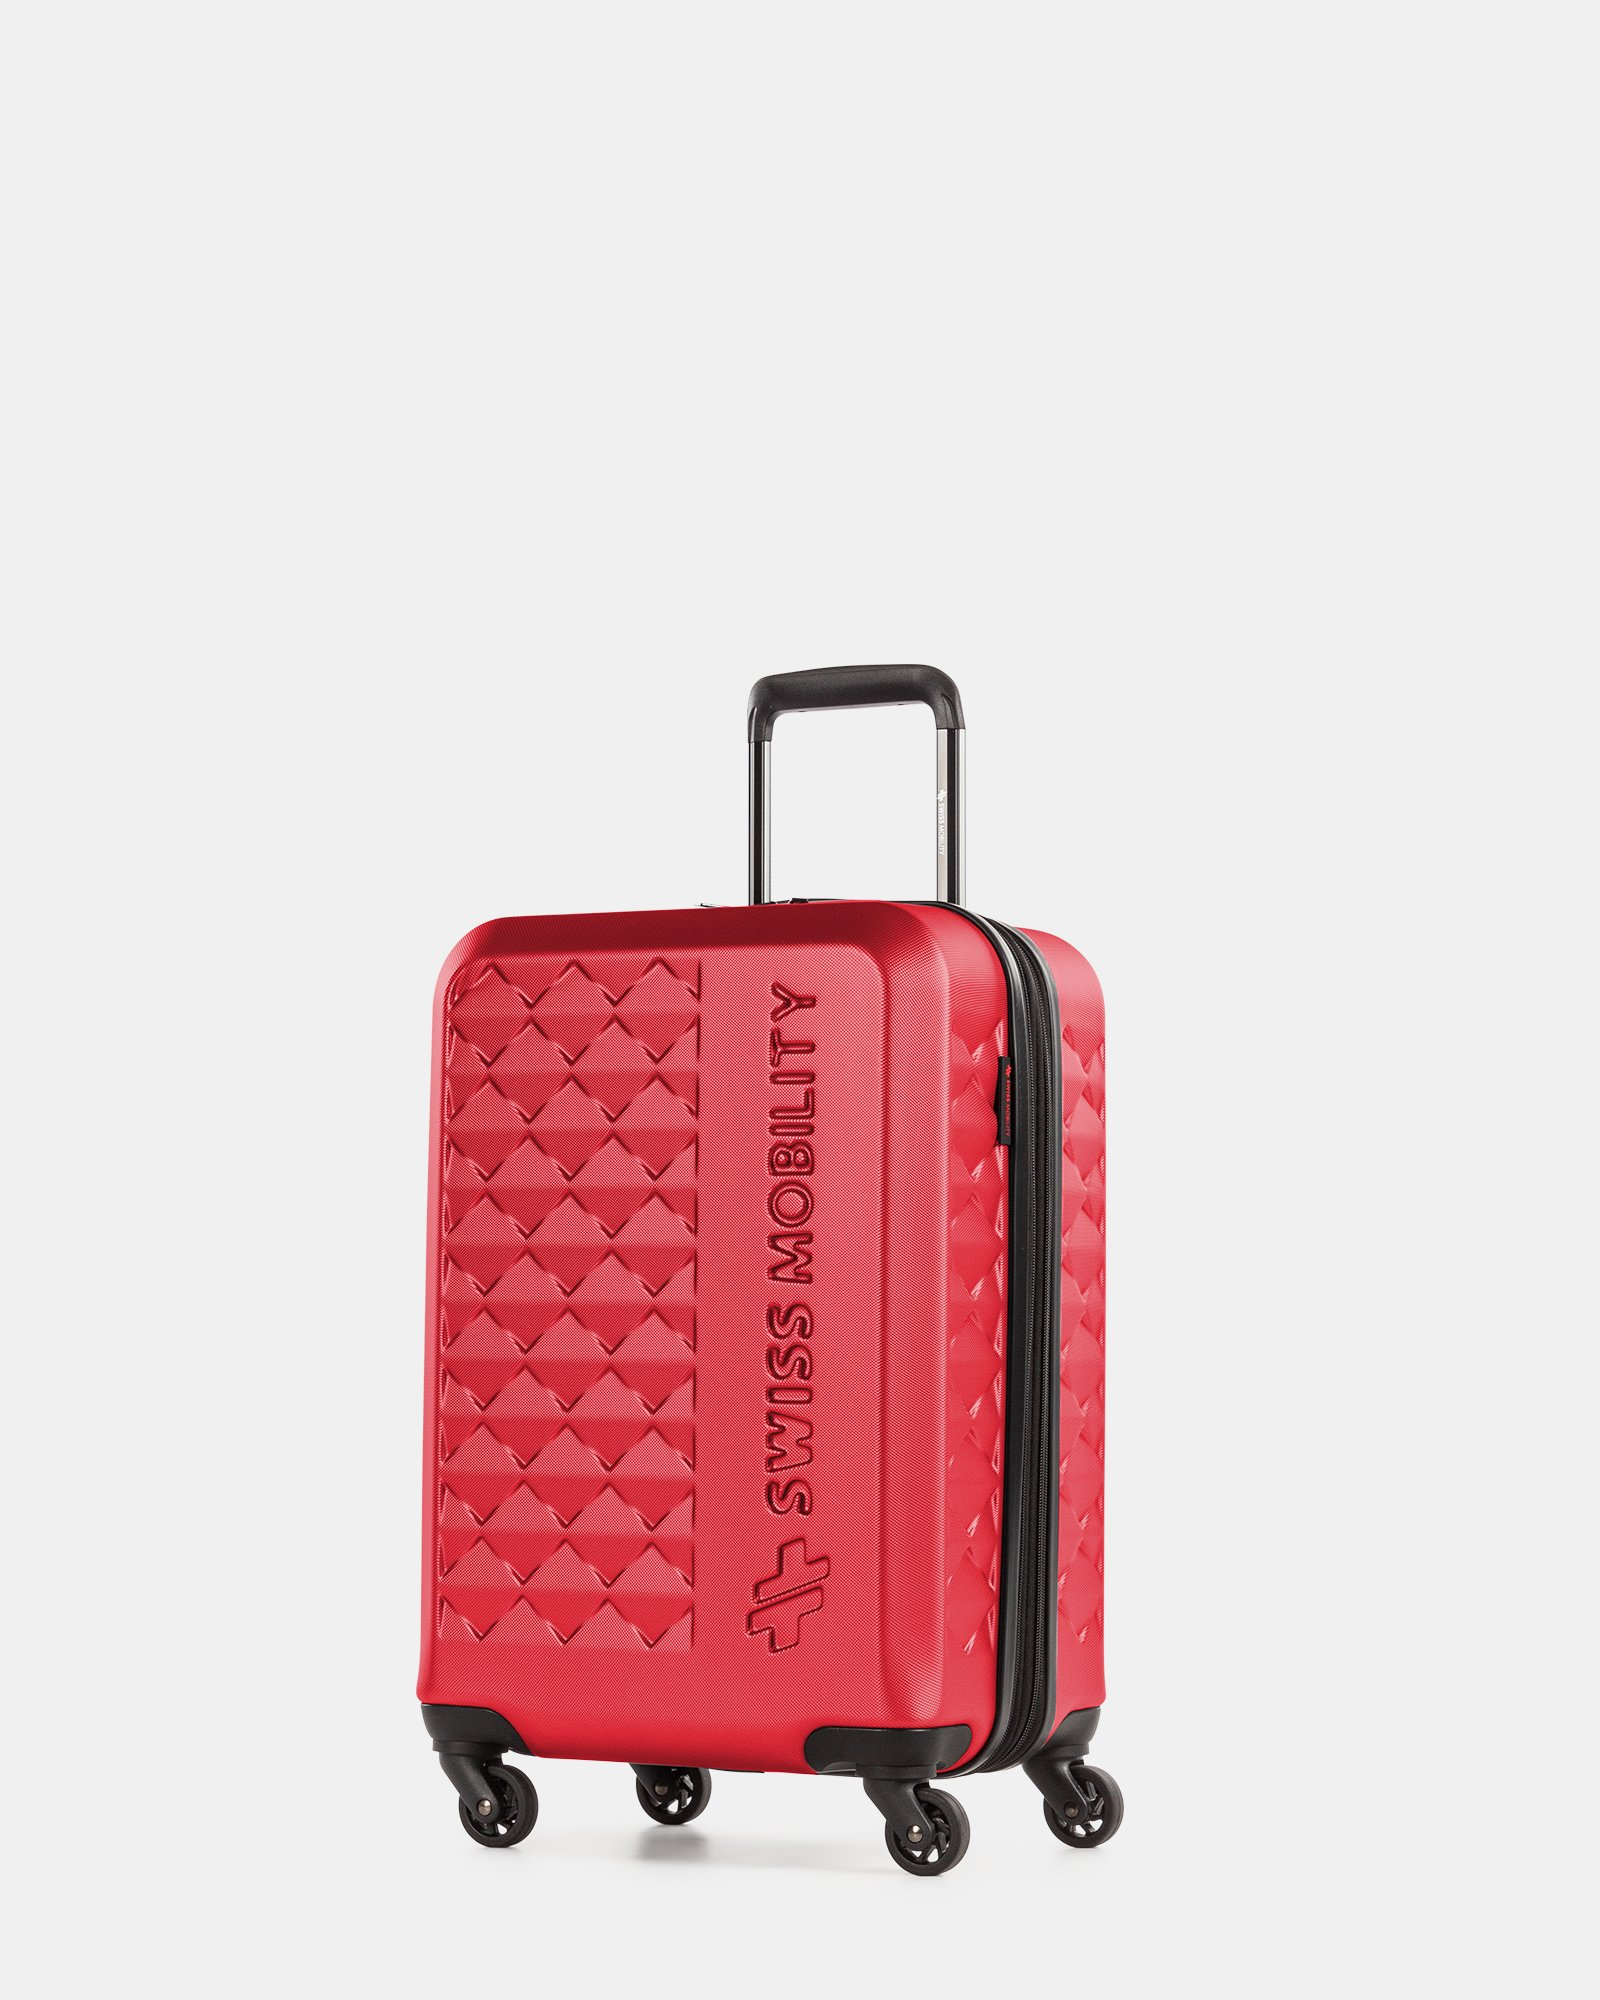 Ridge - Lightweight Hardside Carry-on with Spinner wheels - Red - Swiss Mobility - Zoom